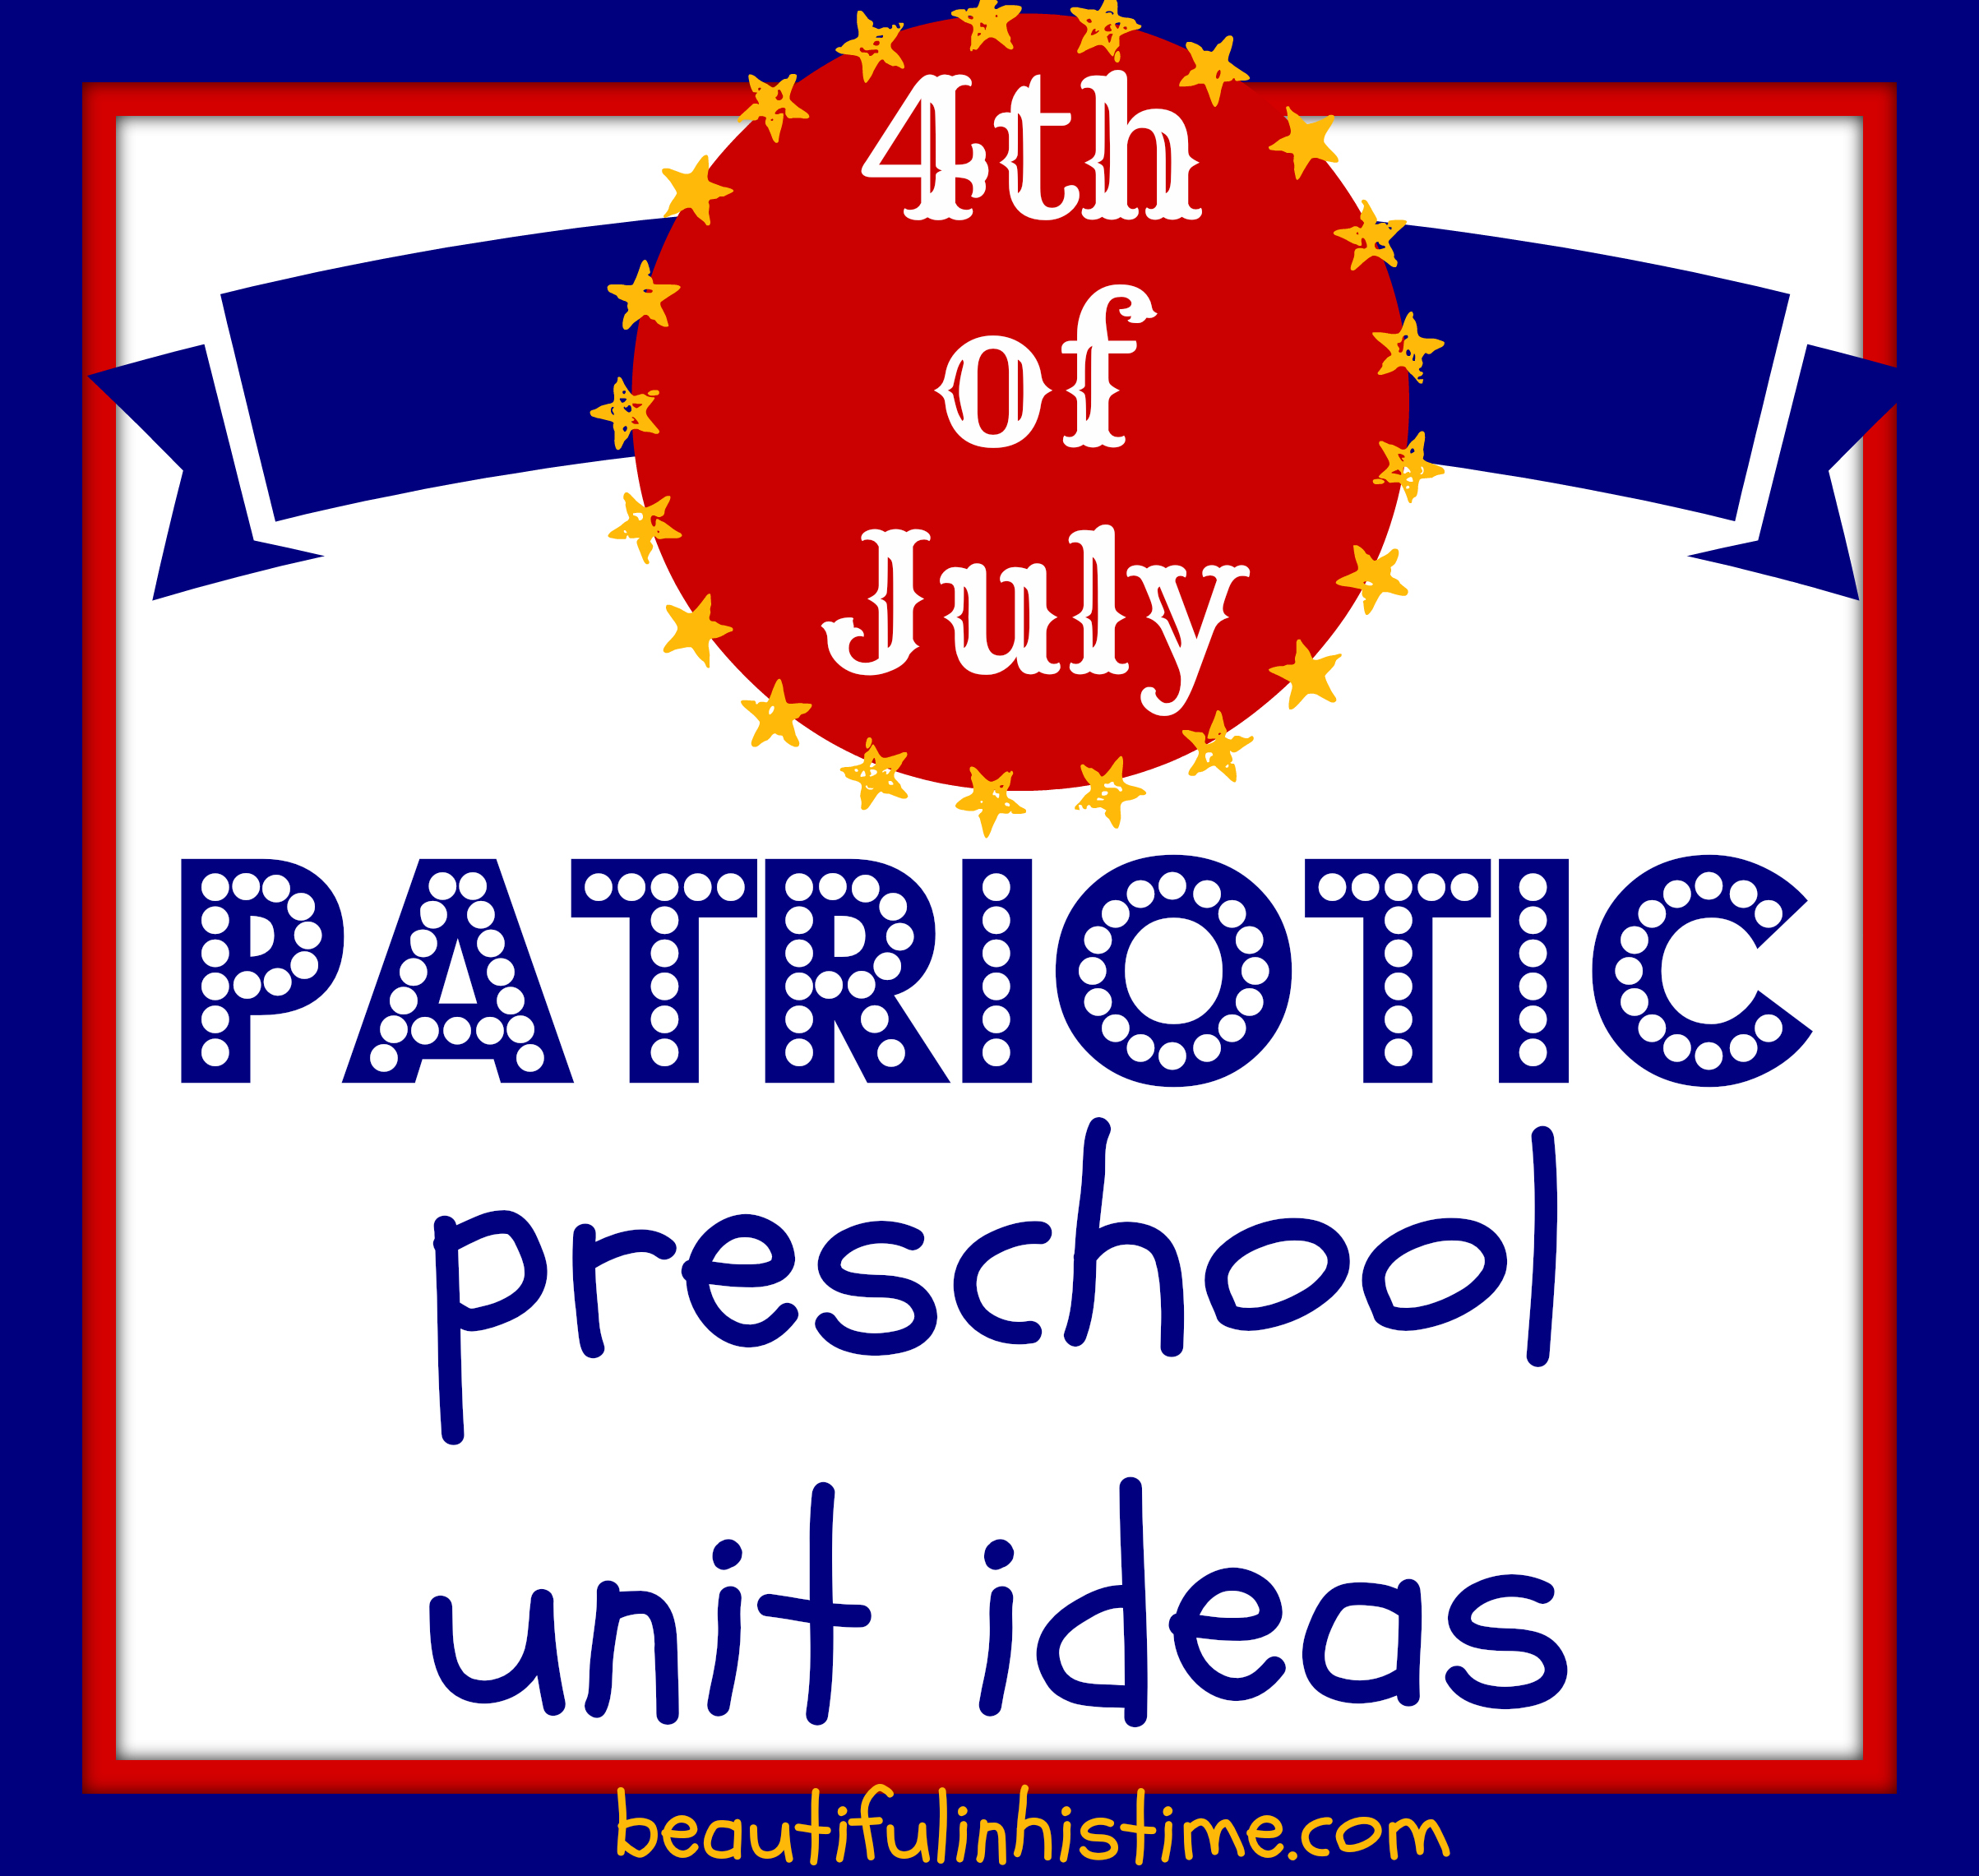 Patriotic Preschool Unit Ideas And Resources For The 4th